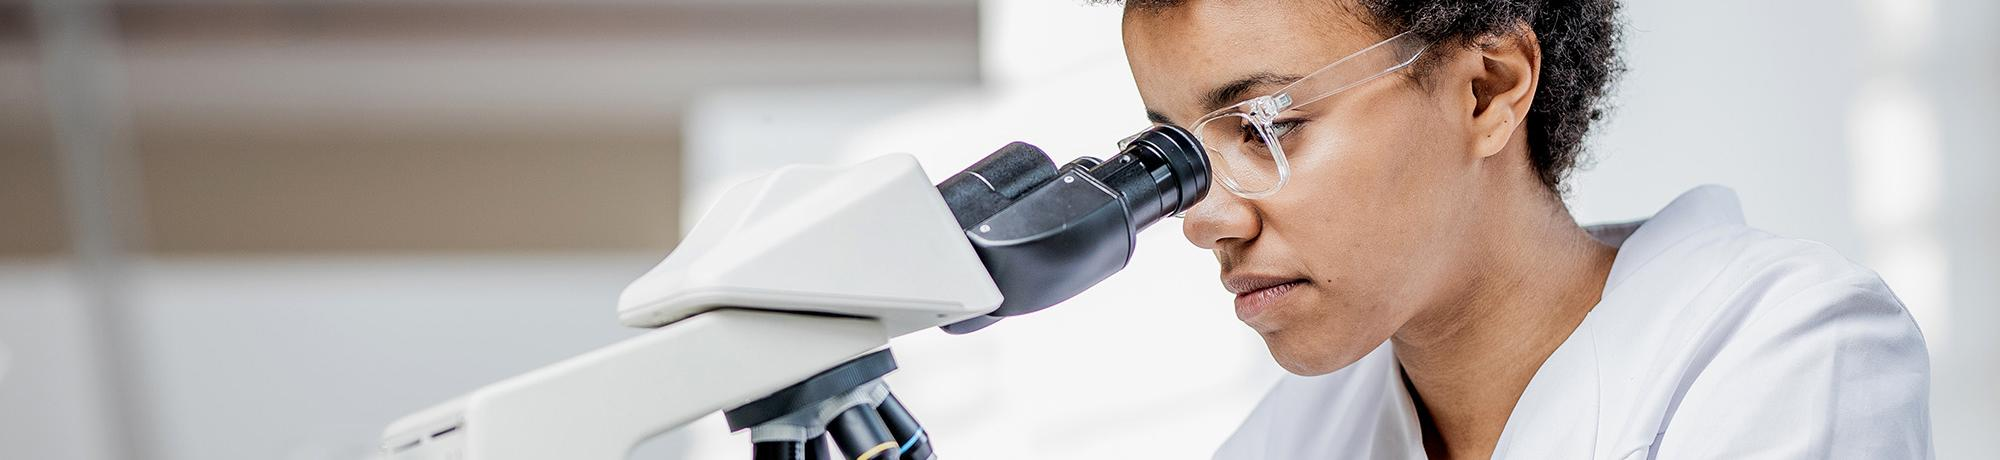 scientist in lab looking in microscope